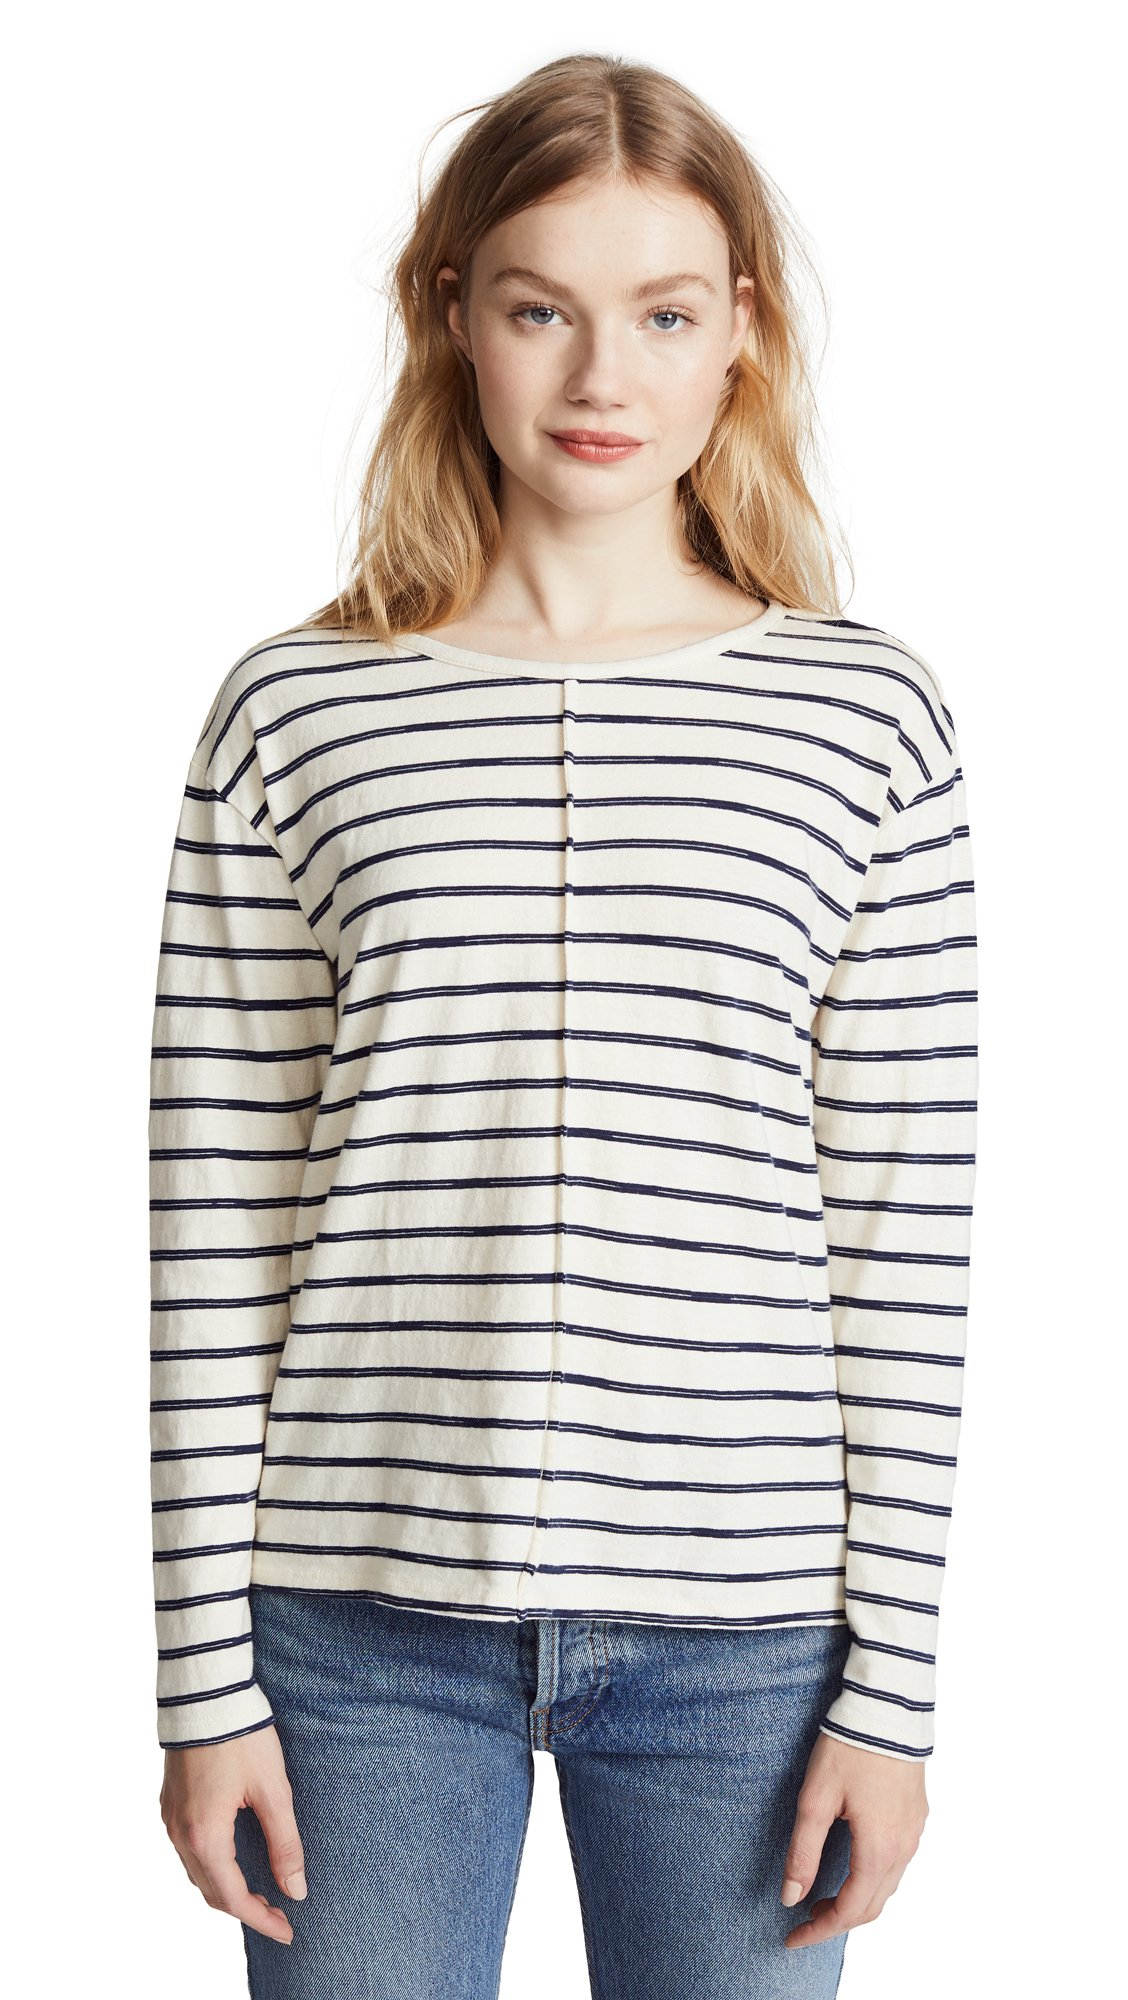 J Brand Women's Remy Tee, Catalina Stripe, Small